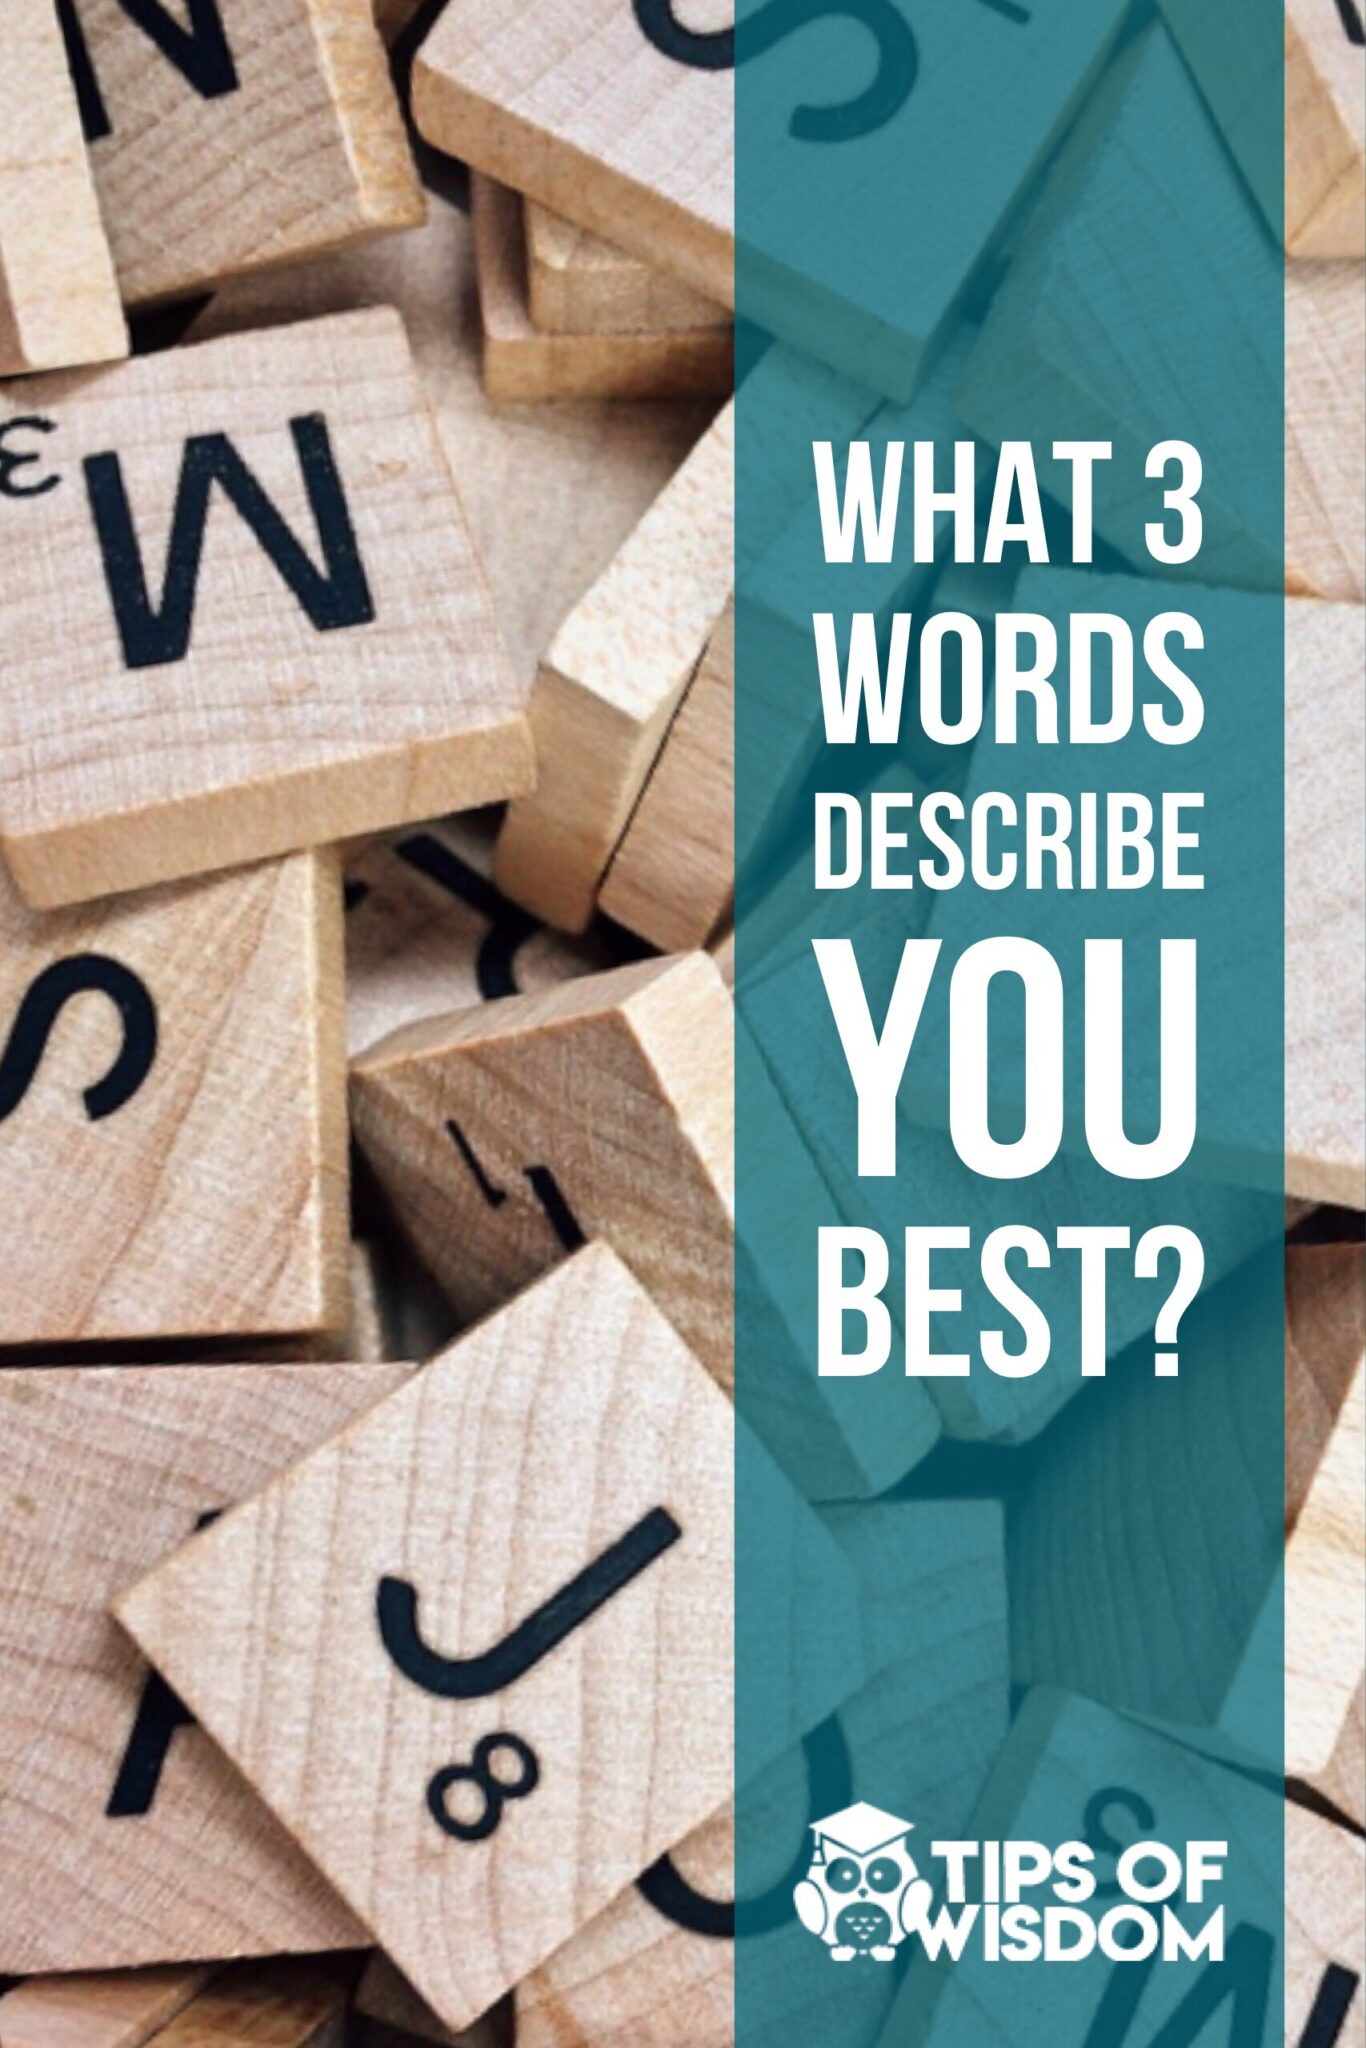 Interview Tips: What 3 Words best describe you